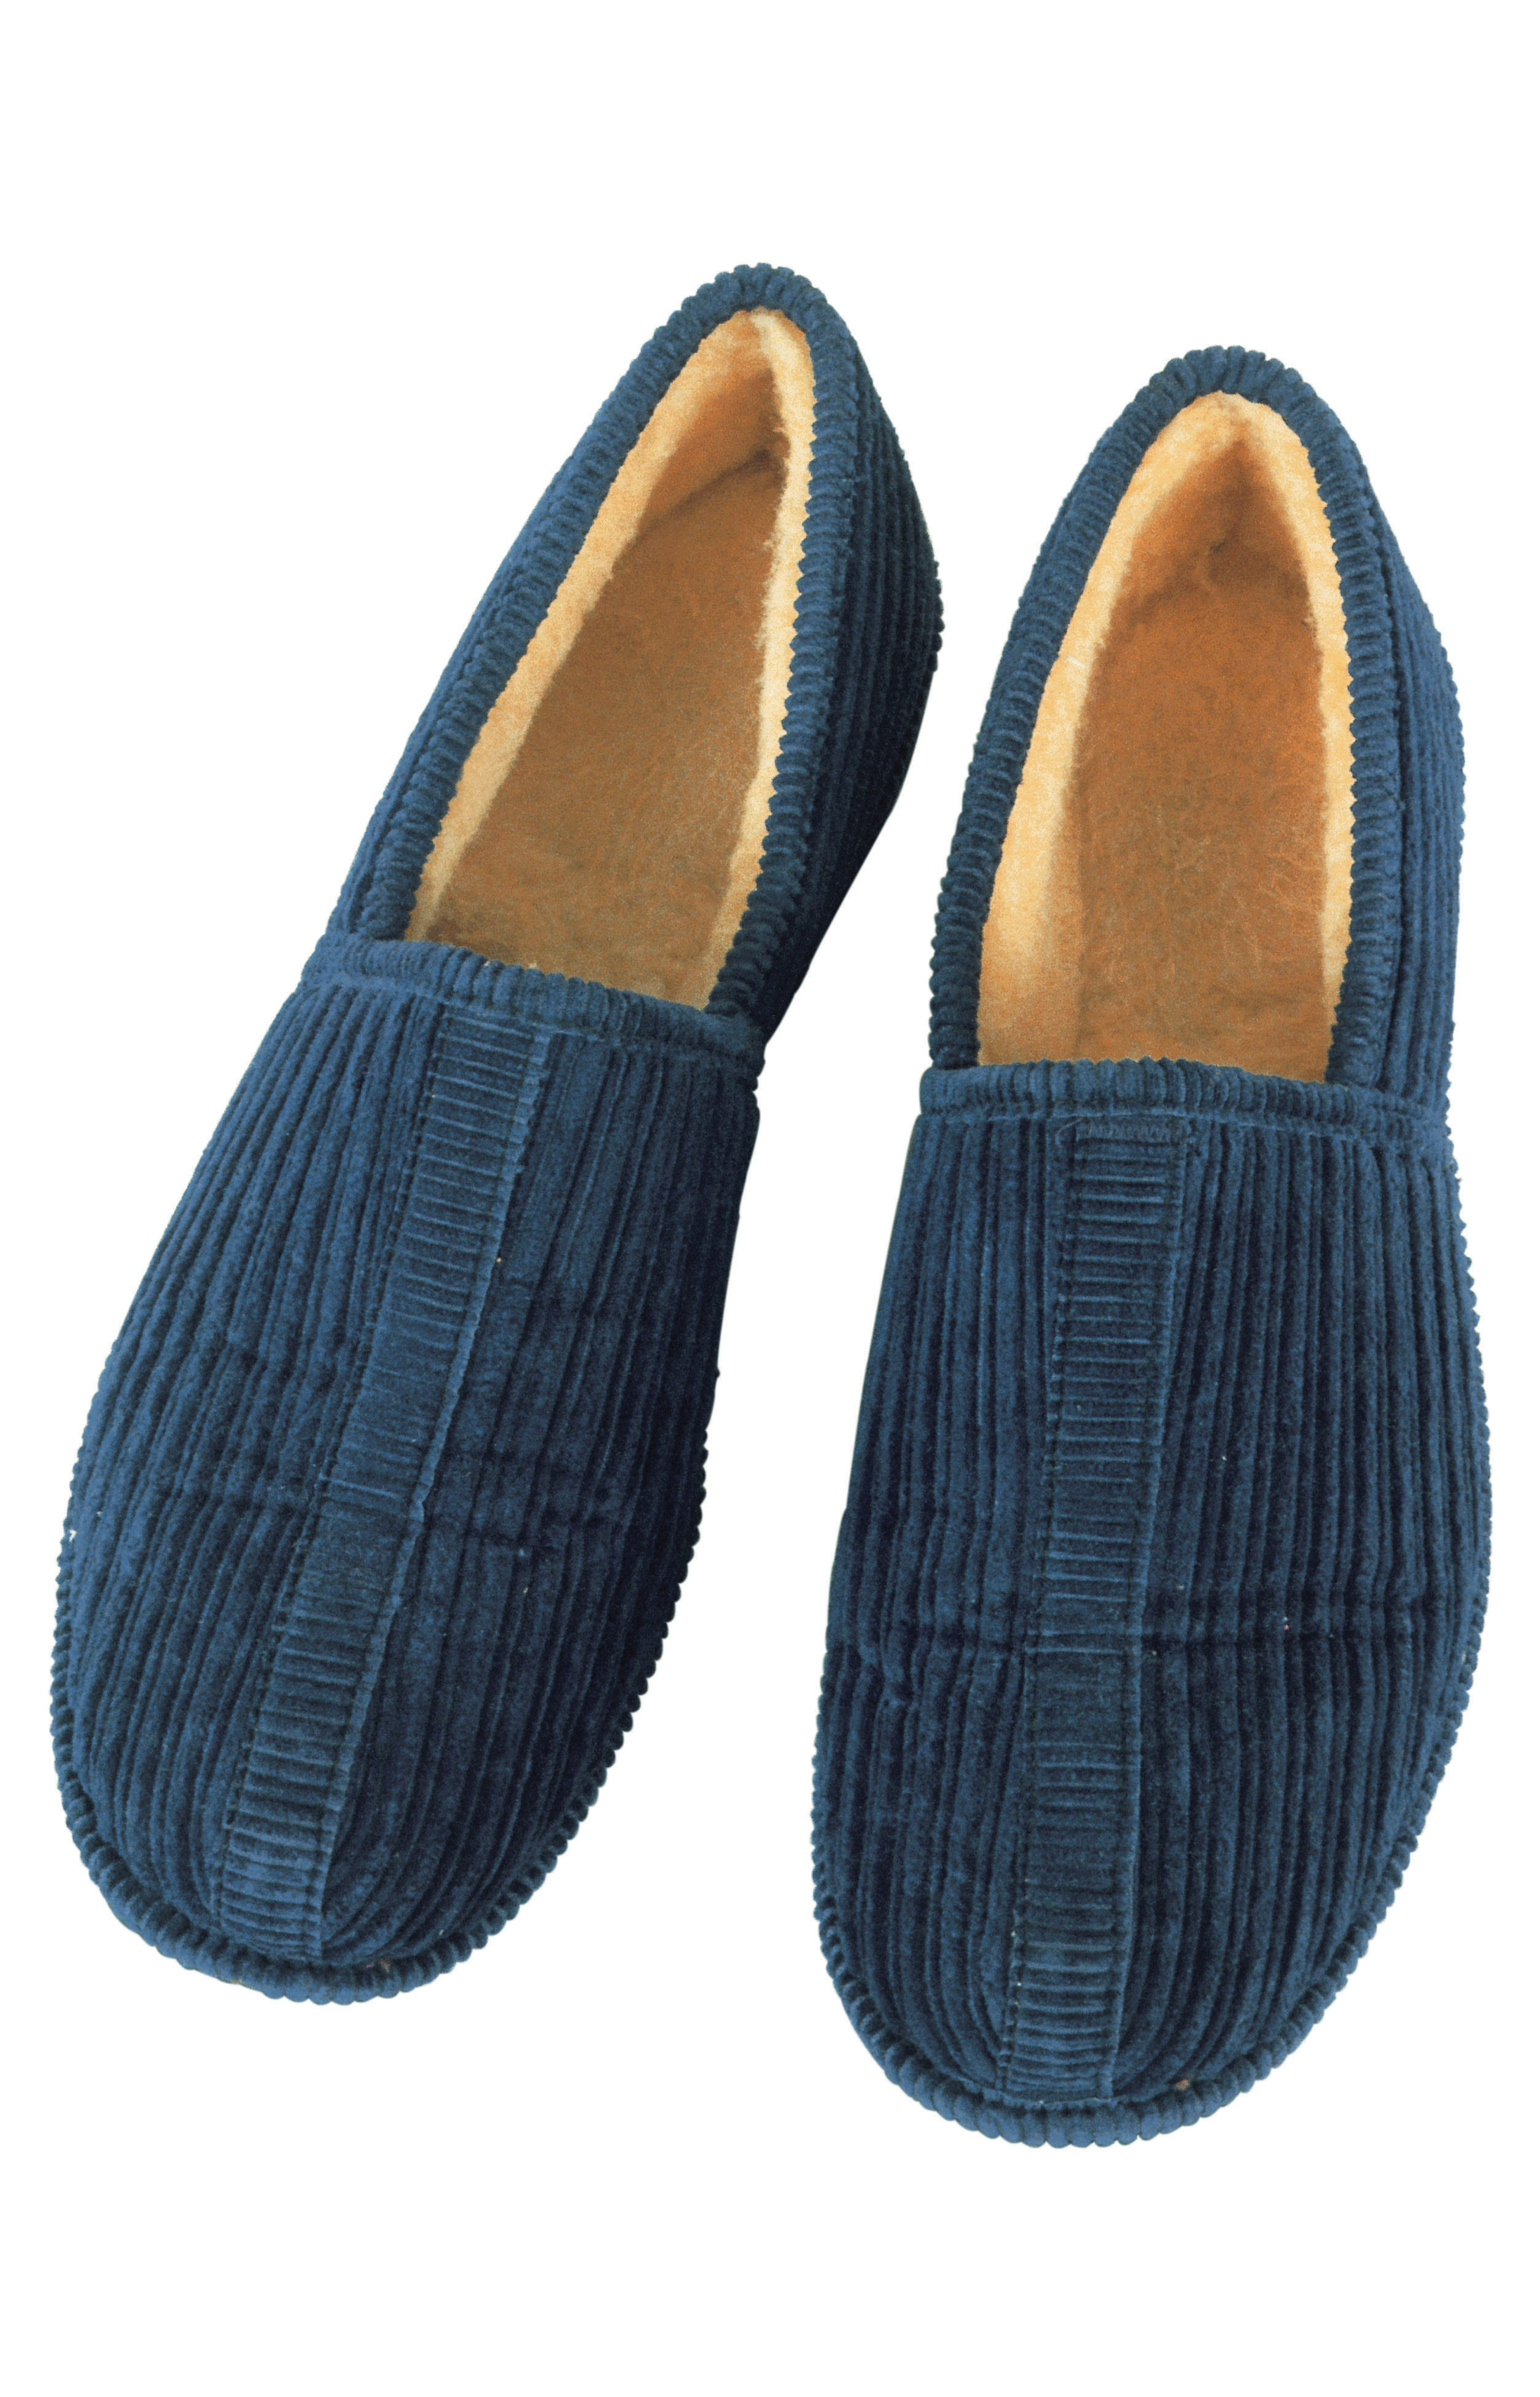 60c861c80604d Are the Liners in Winter Crocs Removable